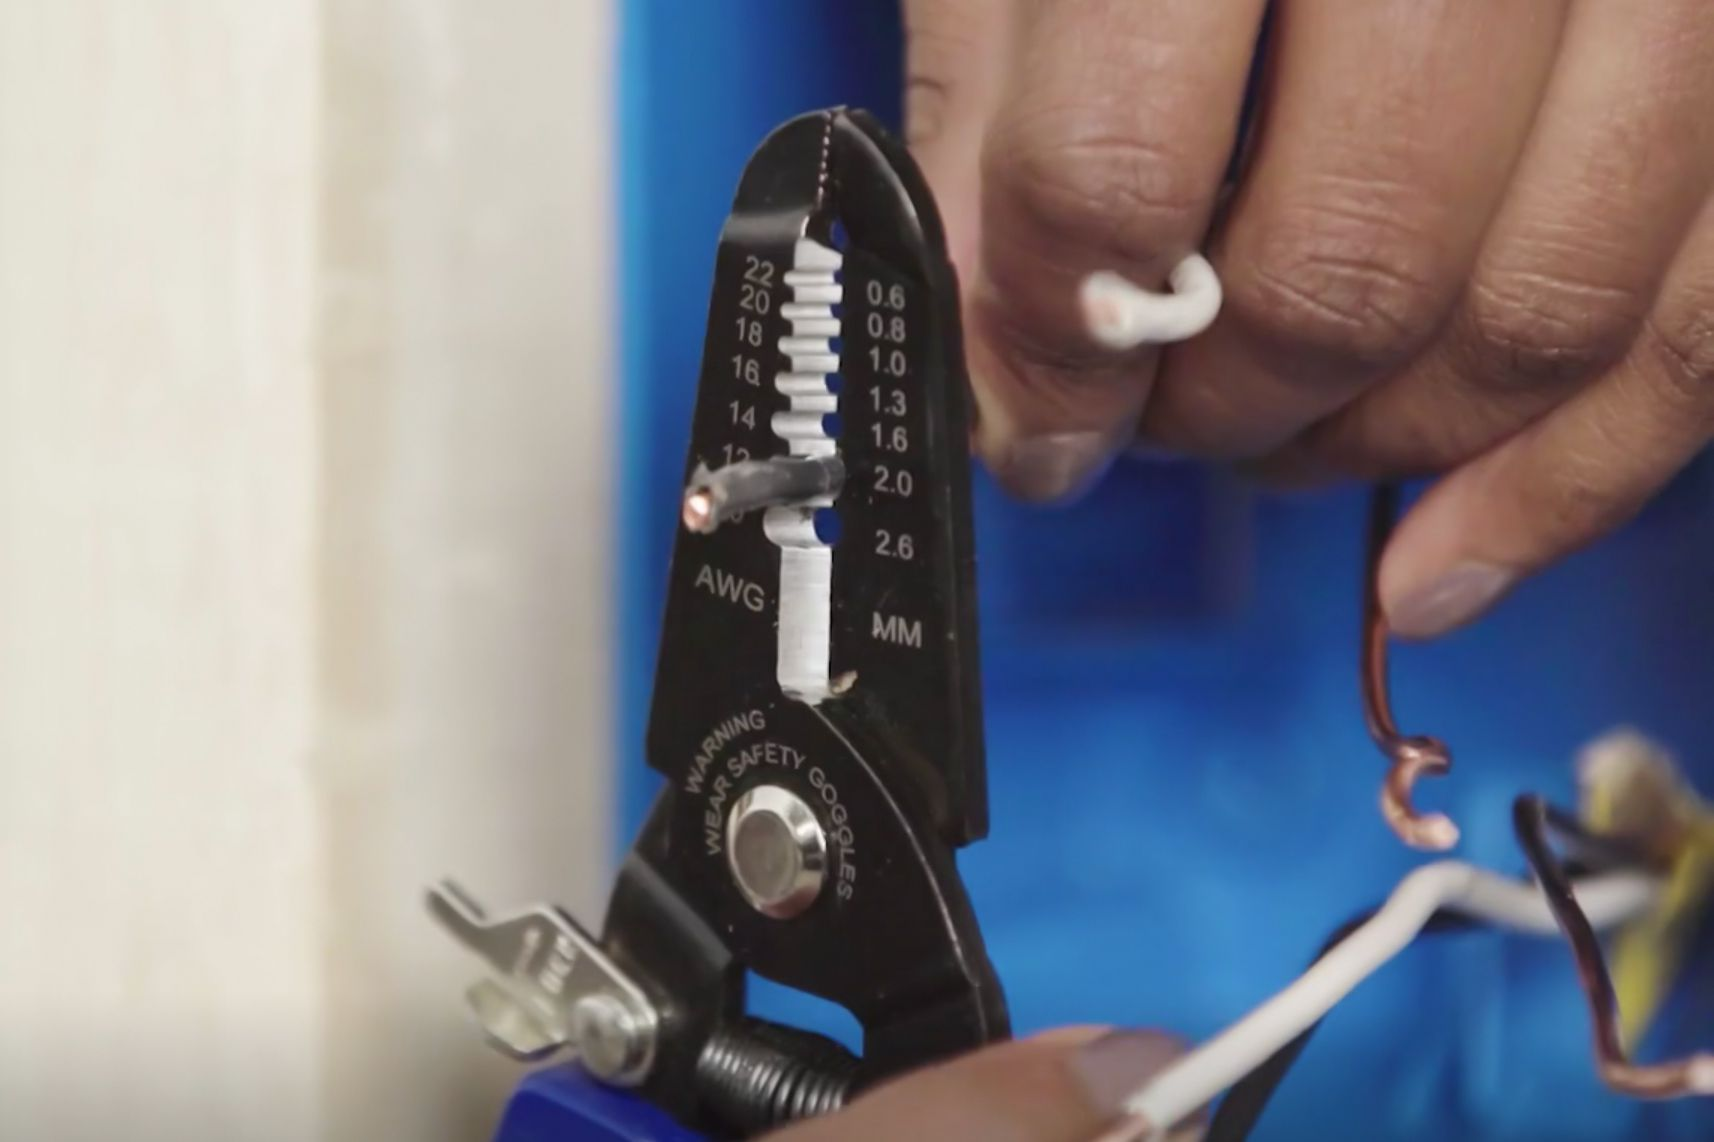 Wire screws clamped to secure cables